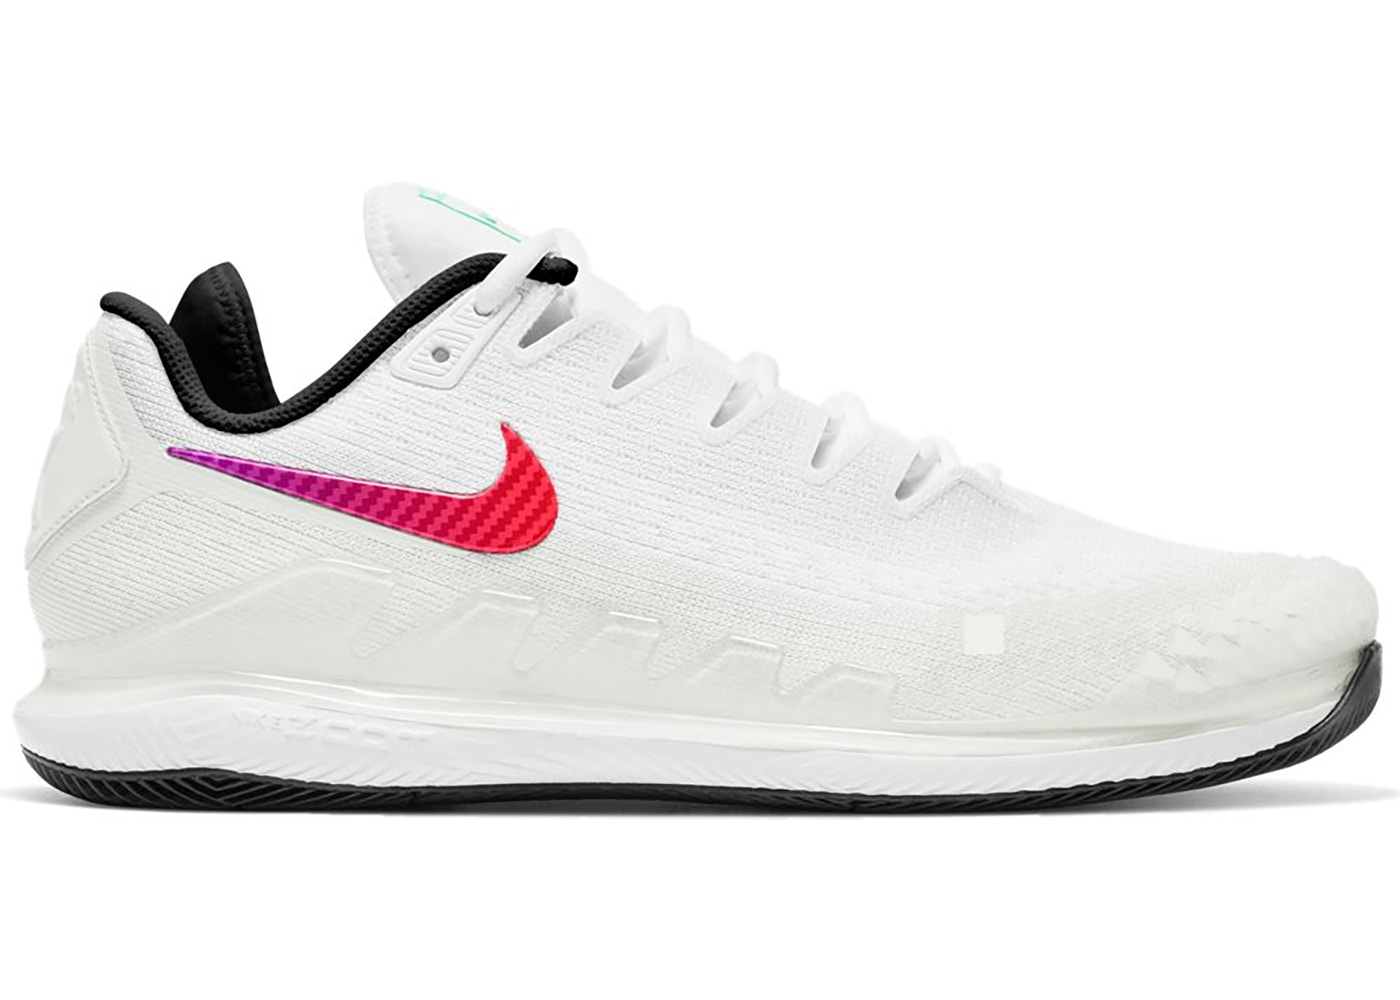 Nikecourt Air Zoom Vapor X Knit White Black Electro Green Ar0496 112